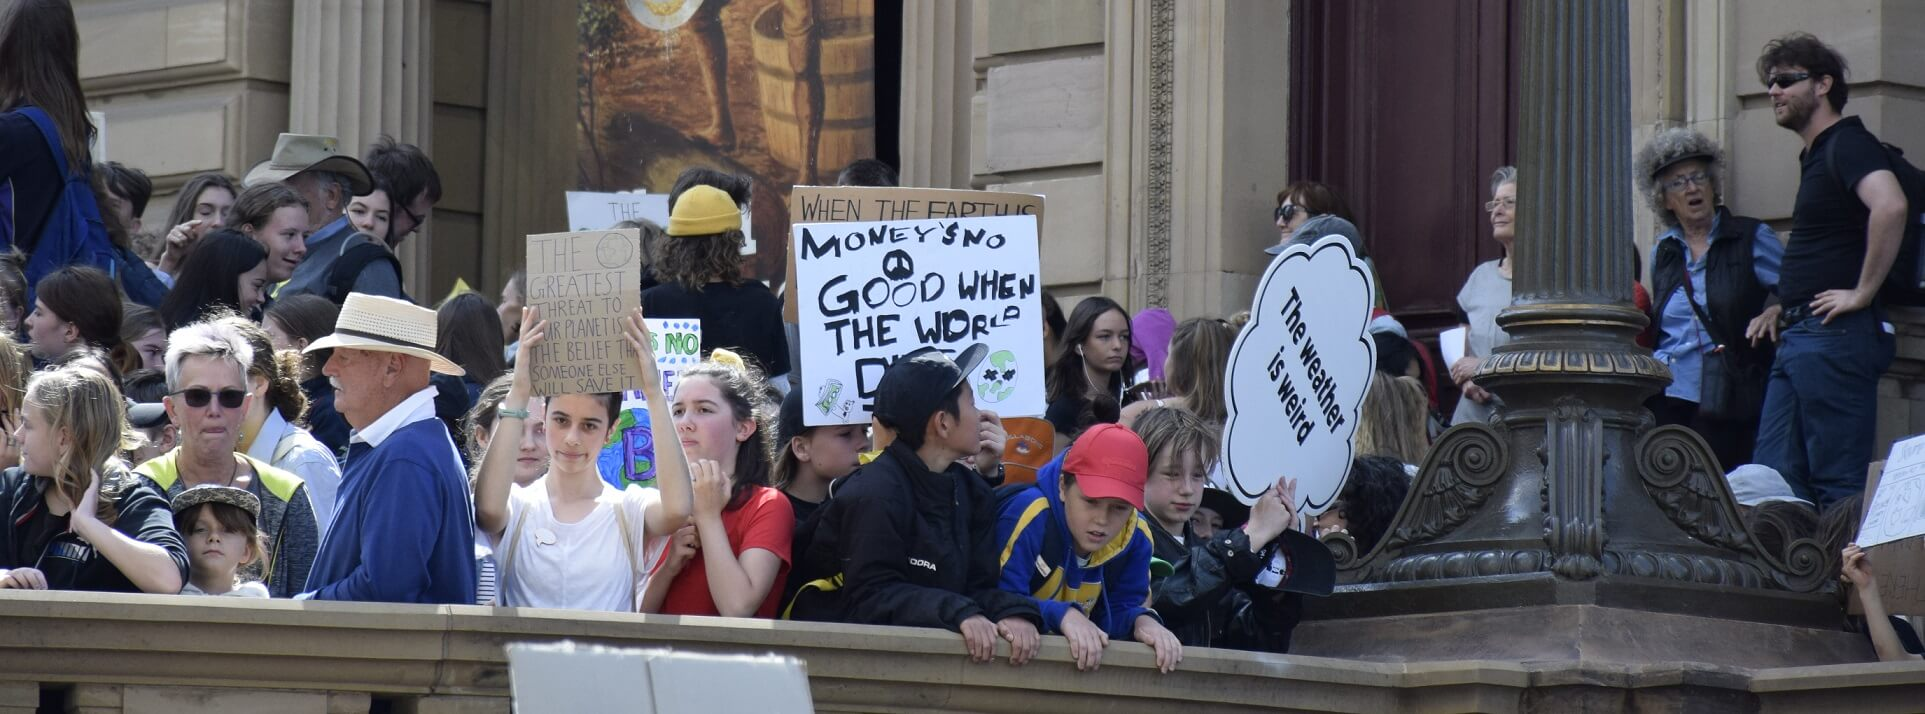 School Strike 4 Climate in Melbourne, 15 March 2019.